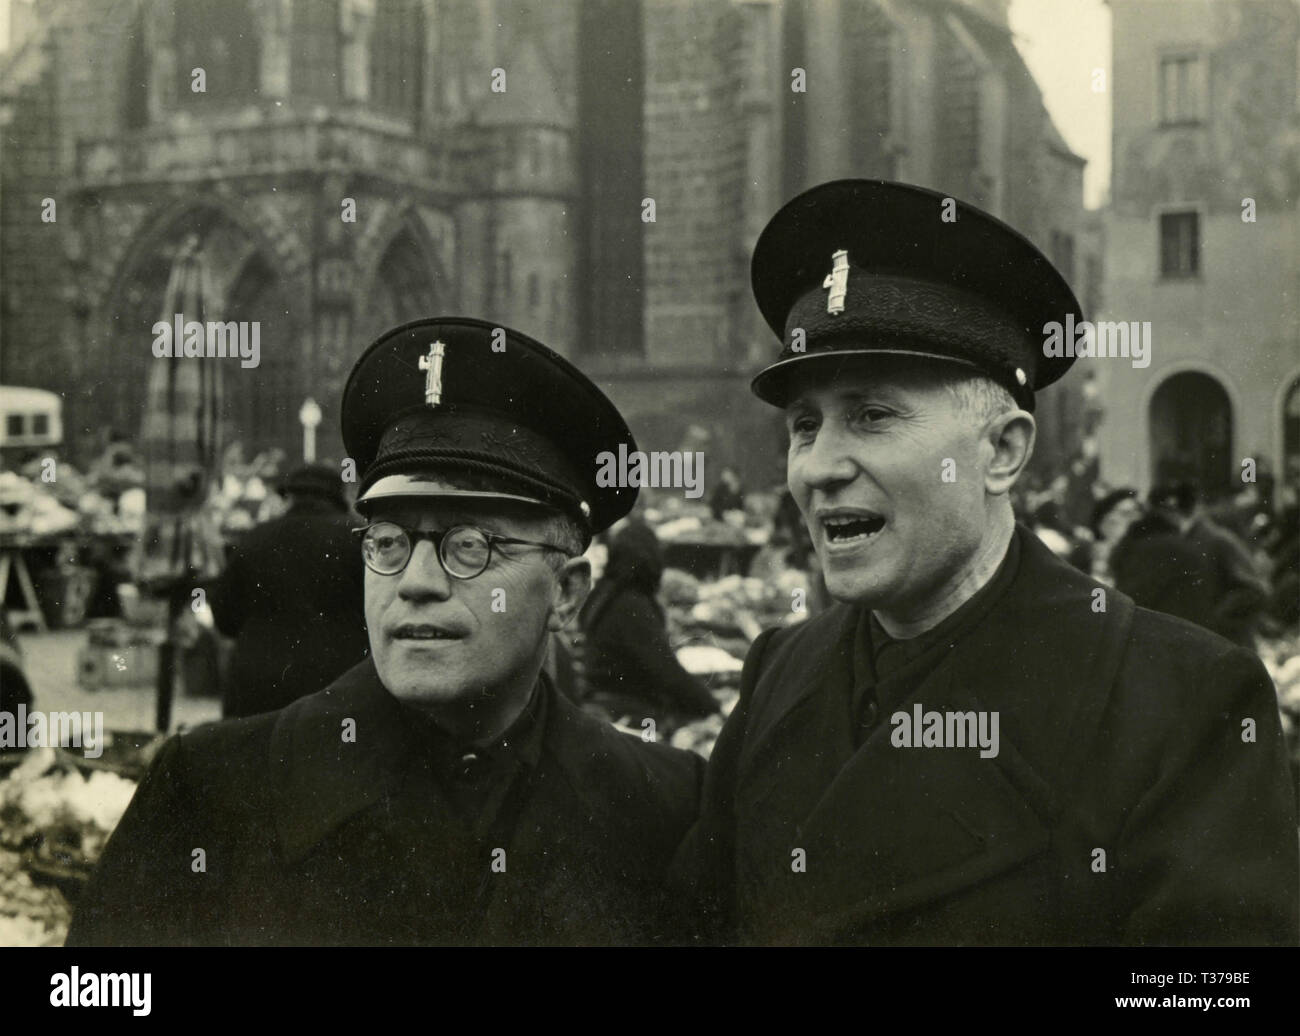 Two man with fascist uniforms, Italy 1930s - Stock Image